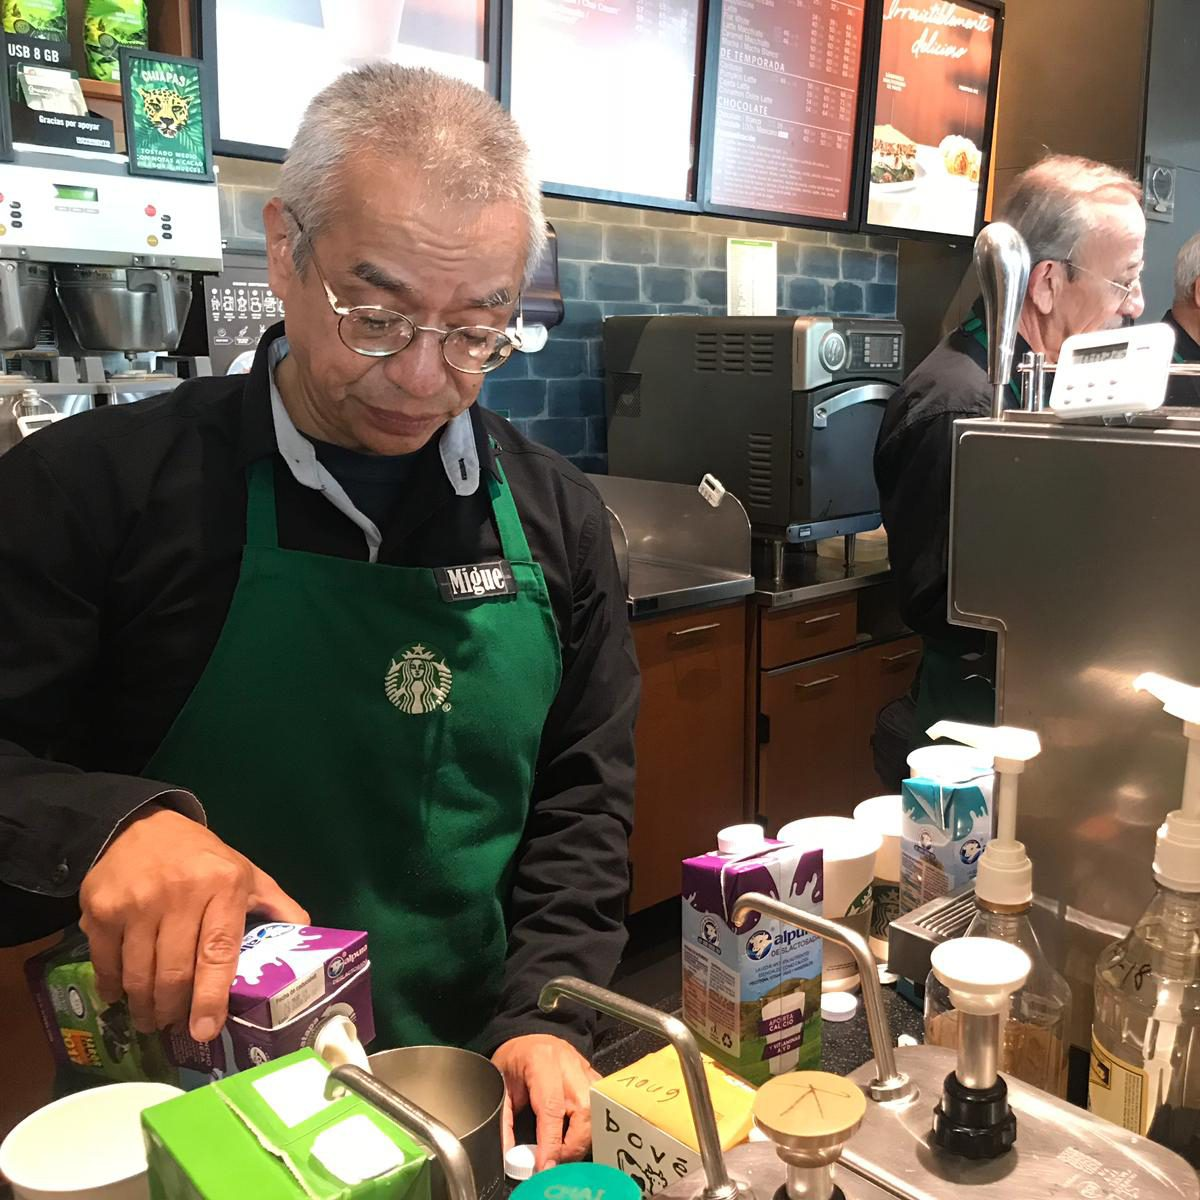 """30 October 2018, Mexico, Mexiko-Stadt: Miguel Angel Martinez Sarmiento works as a barista in a branch of the US coffee house """"Starbucks"""" and pours milk into a can. All the employees at the coffee shop, which opened in Del Valle Sur at the beginning of September, are over 60 years old. (to dpa """"US coffee house operates senior branch in Mexico City"""" from 01.11.2018) Photo: Antonia Märzhäuser/dpa (Photo by Antonia Märzhäuser/picture alliance via Getty Images)"""